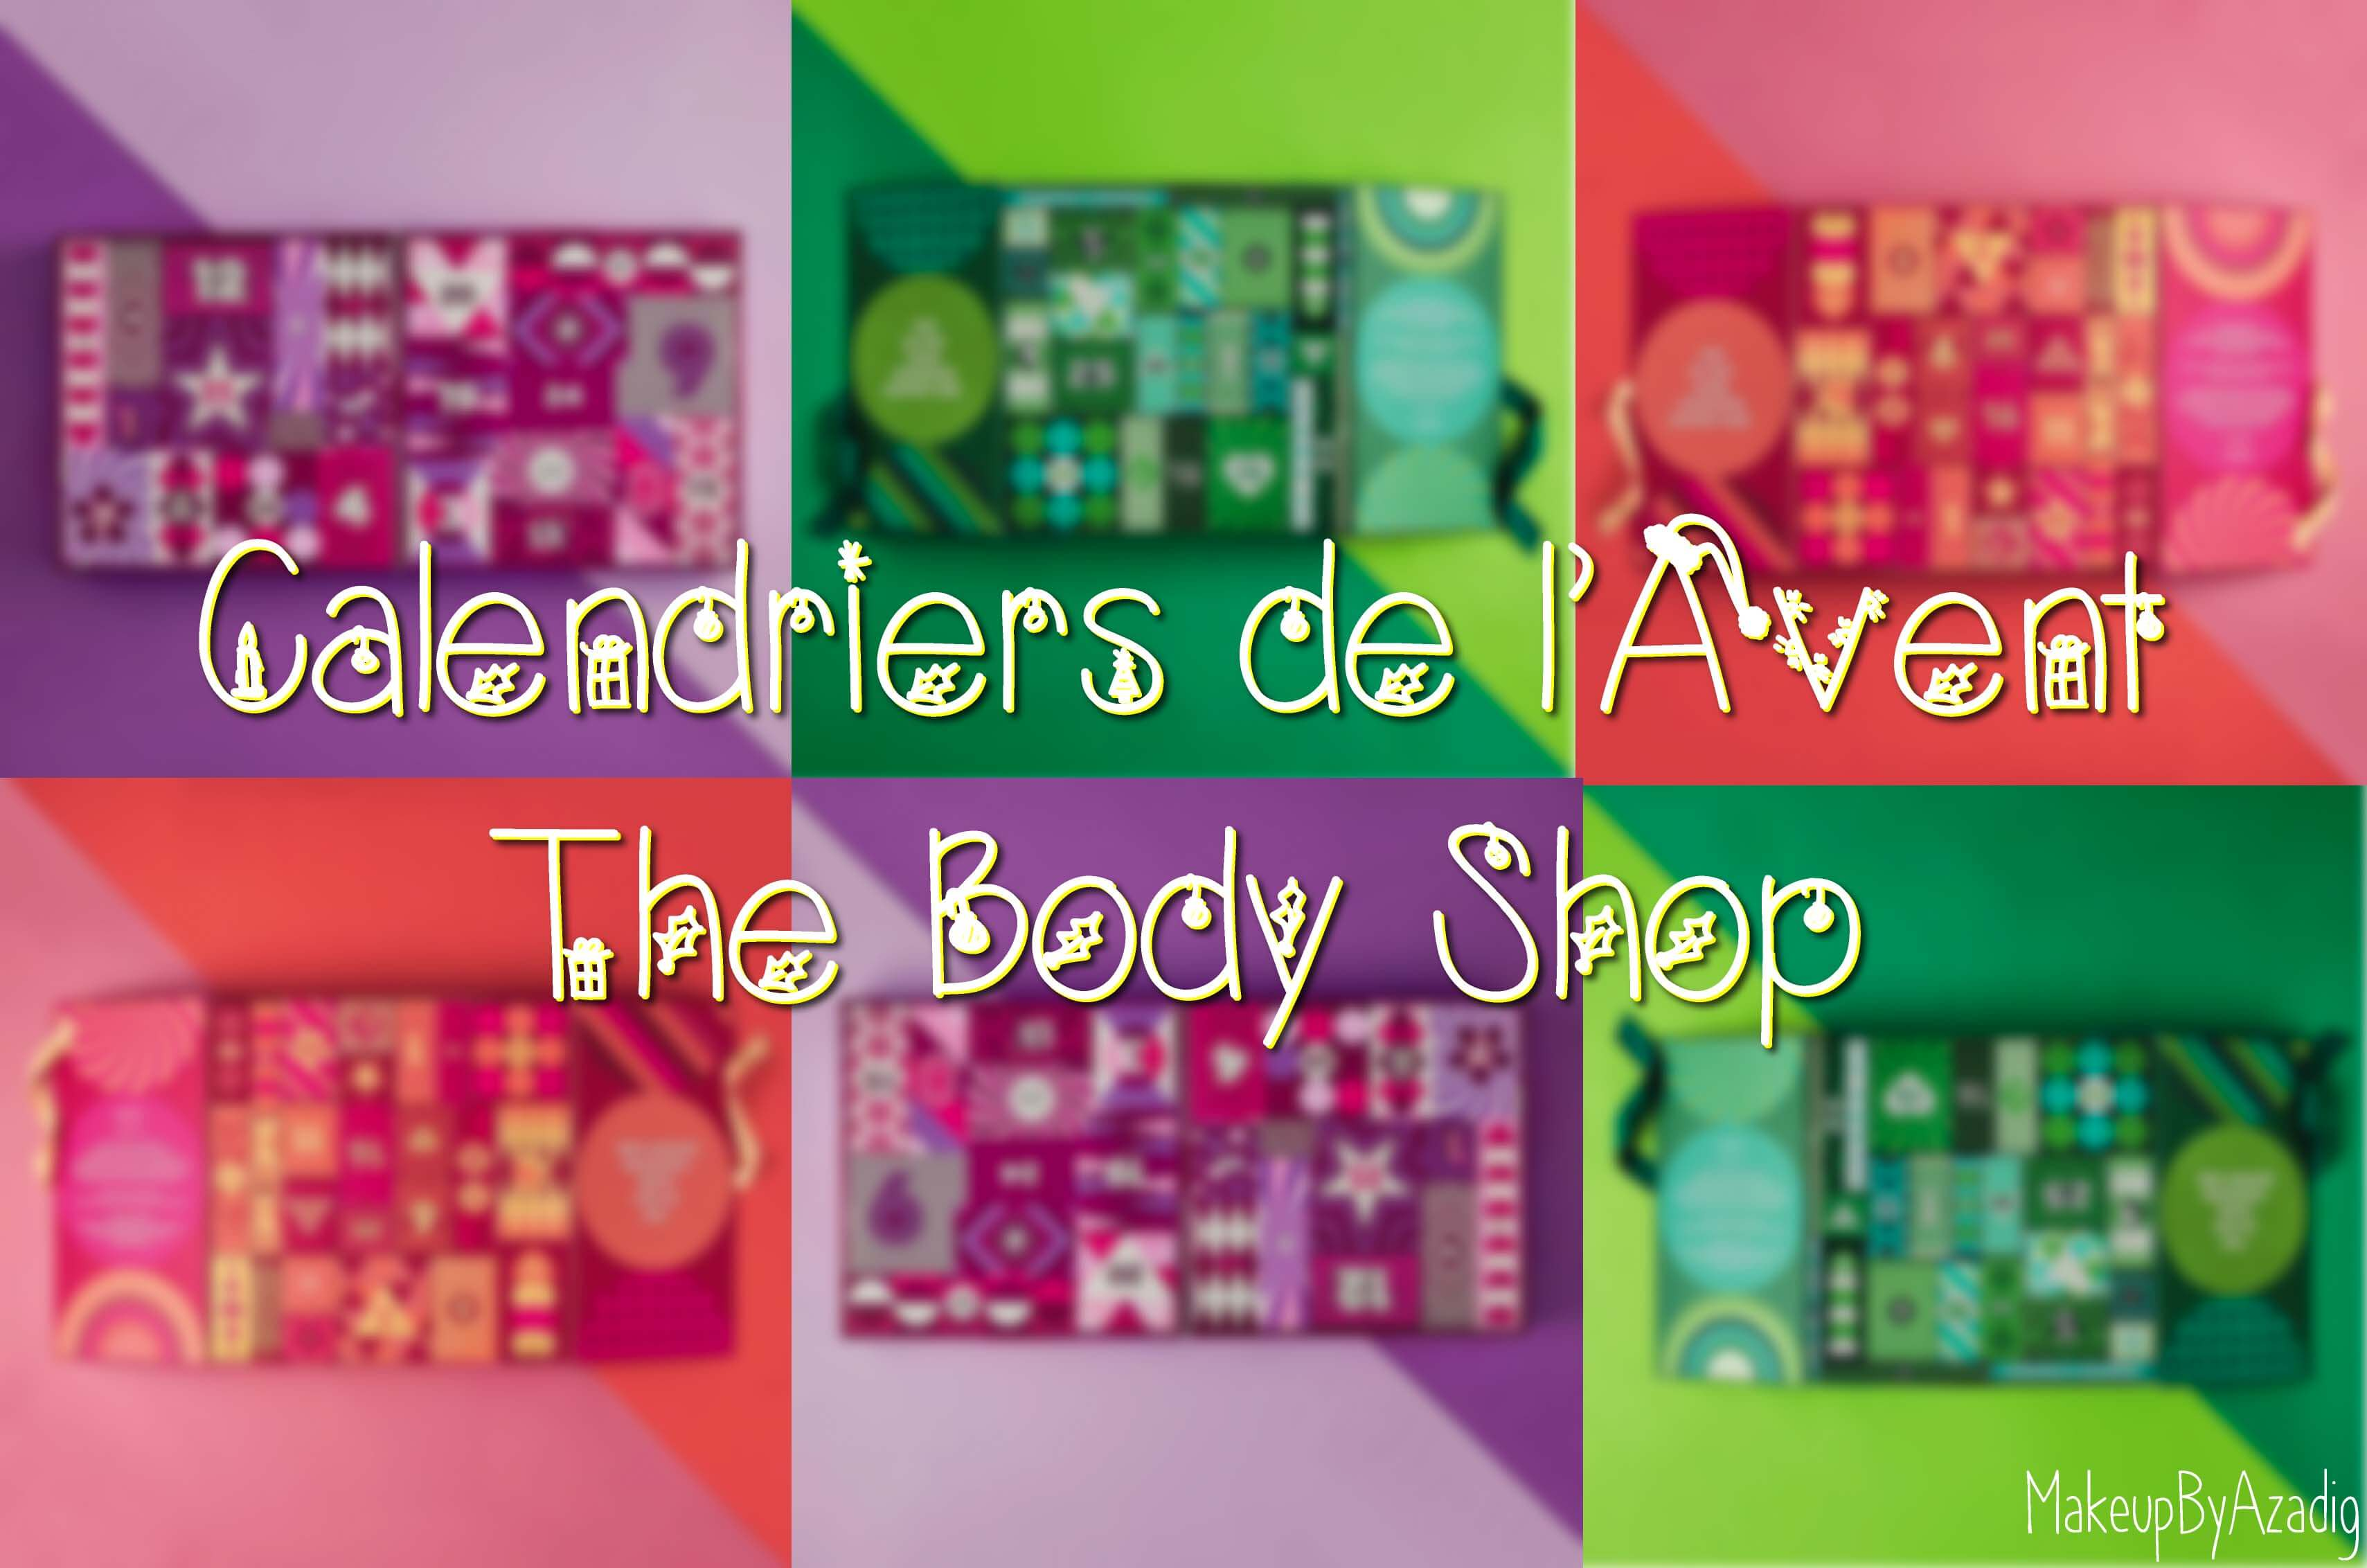 Calendrier de l 39 avent the body shop 2017 makeupbyazadig - Calendrier de l avent original 2017 ...